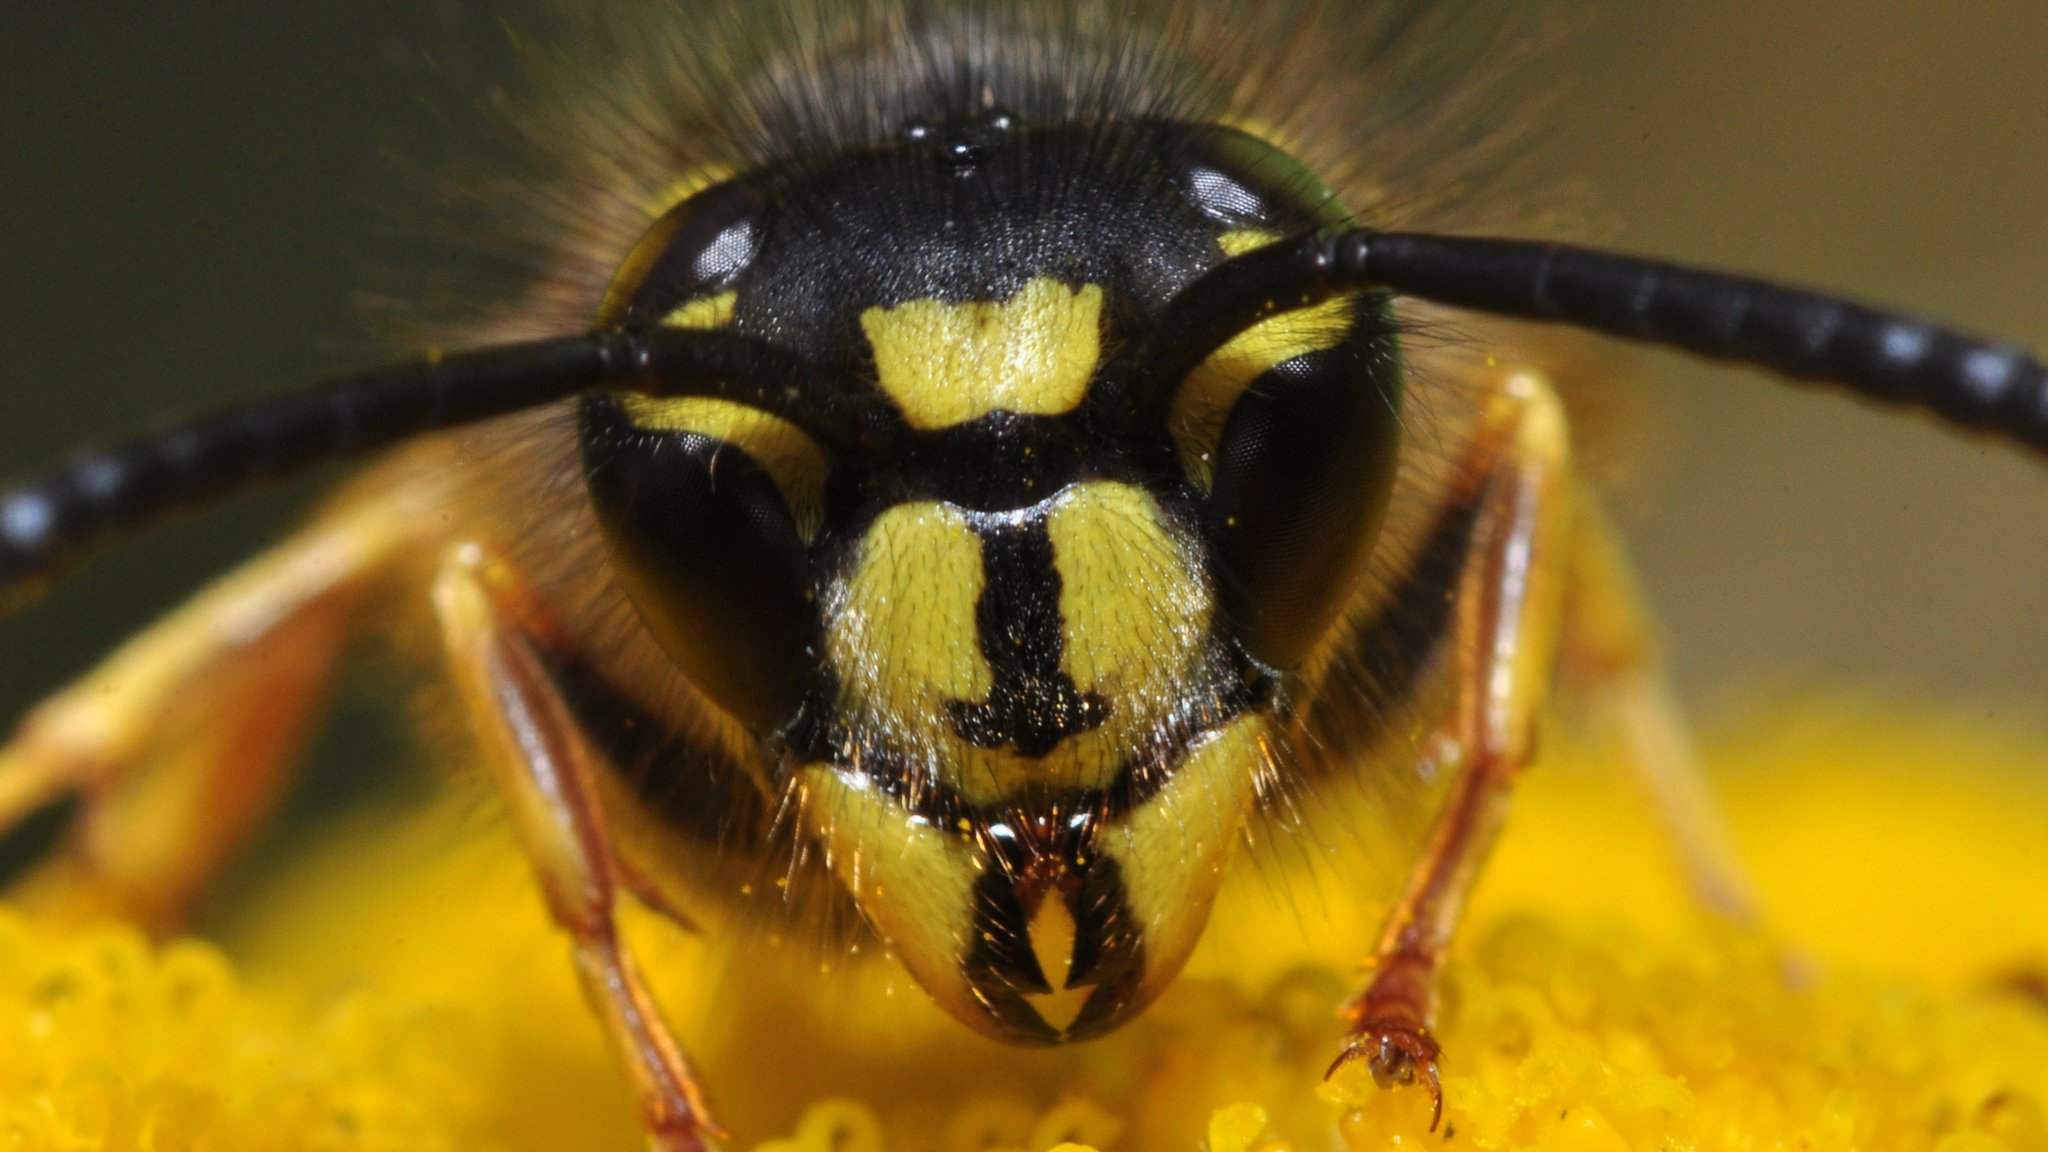 What's the difference between wasps, bees and hornets